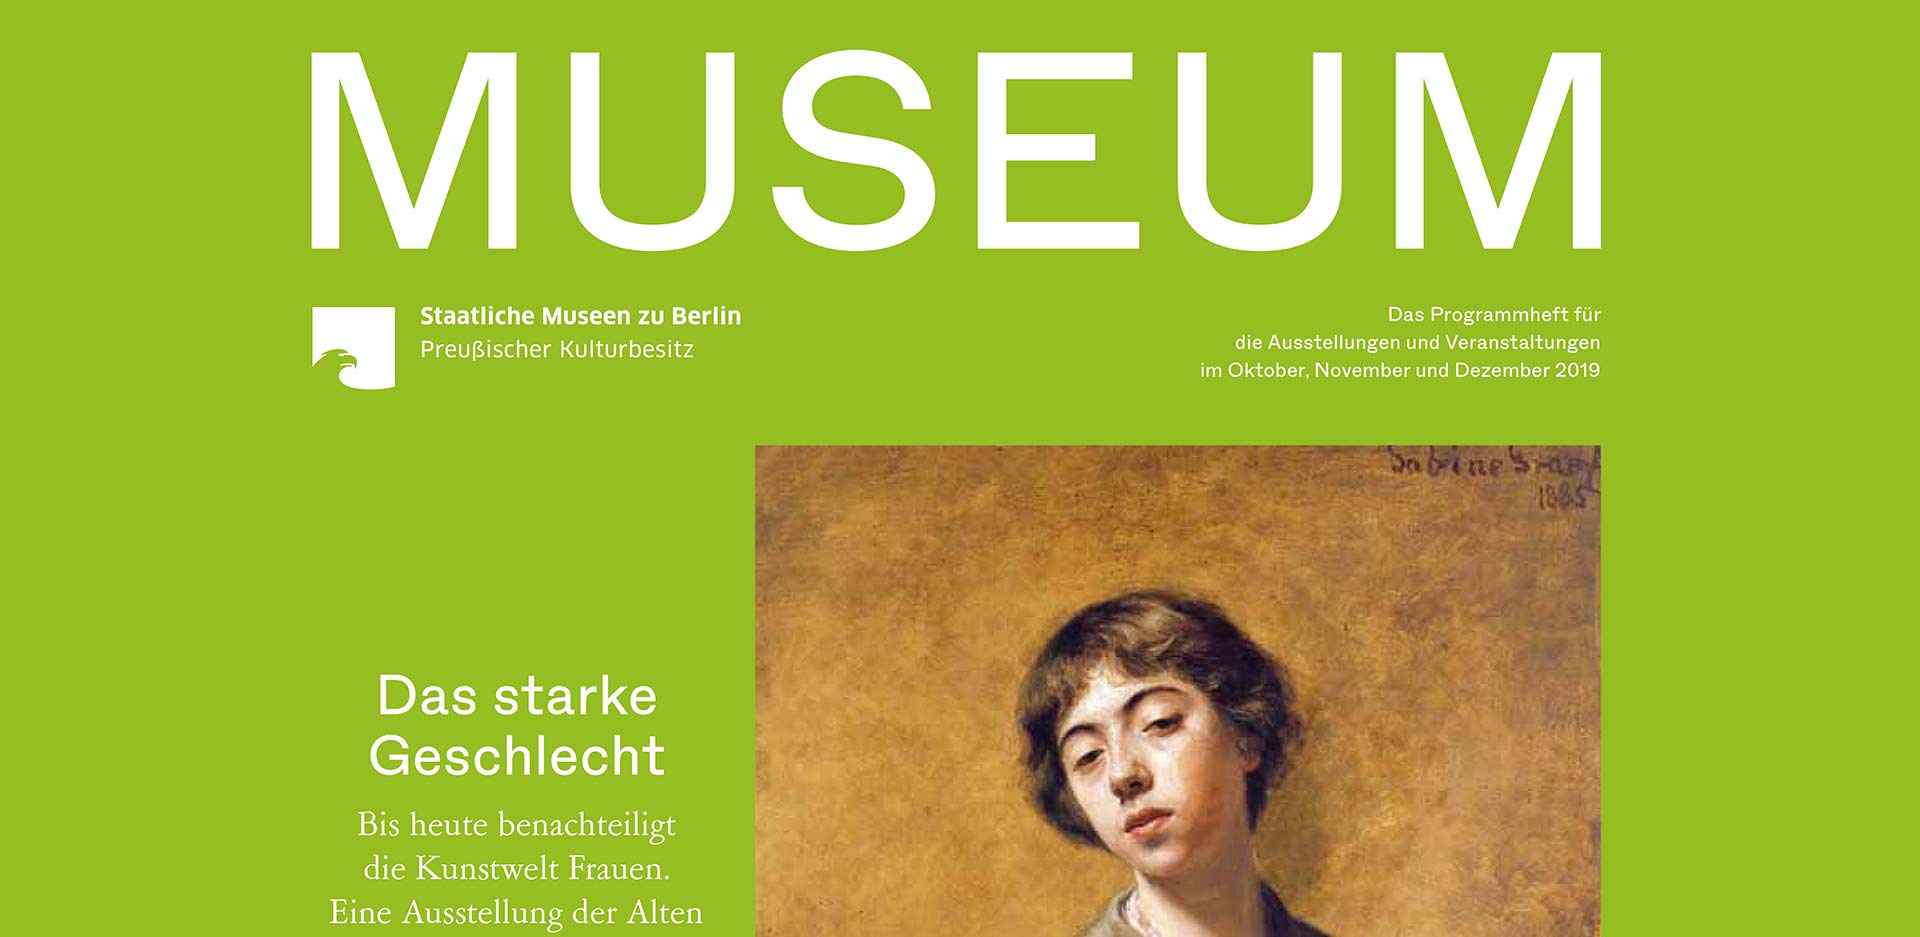 MUSEUM IV 2019 – The program of the Staatlichen Museen zu Berlin is out now!